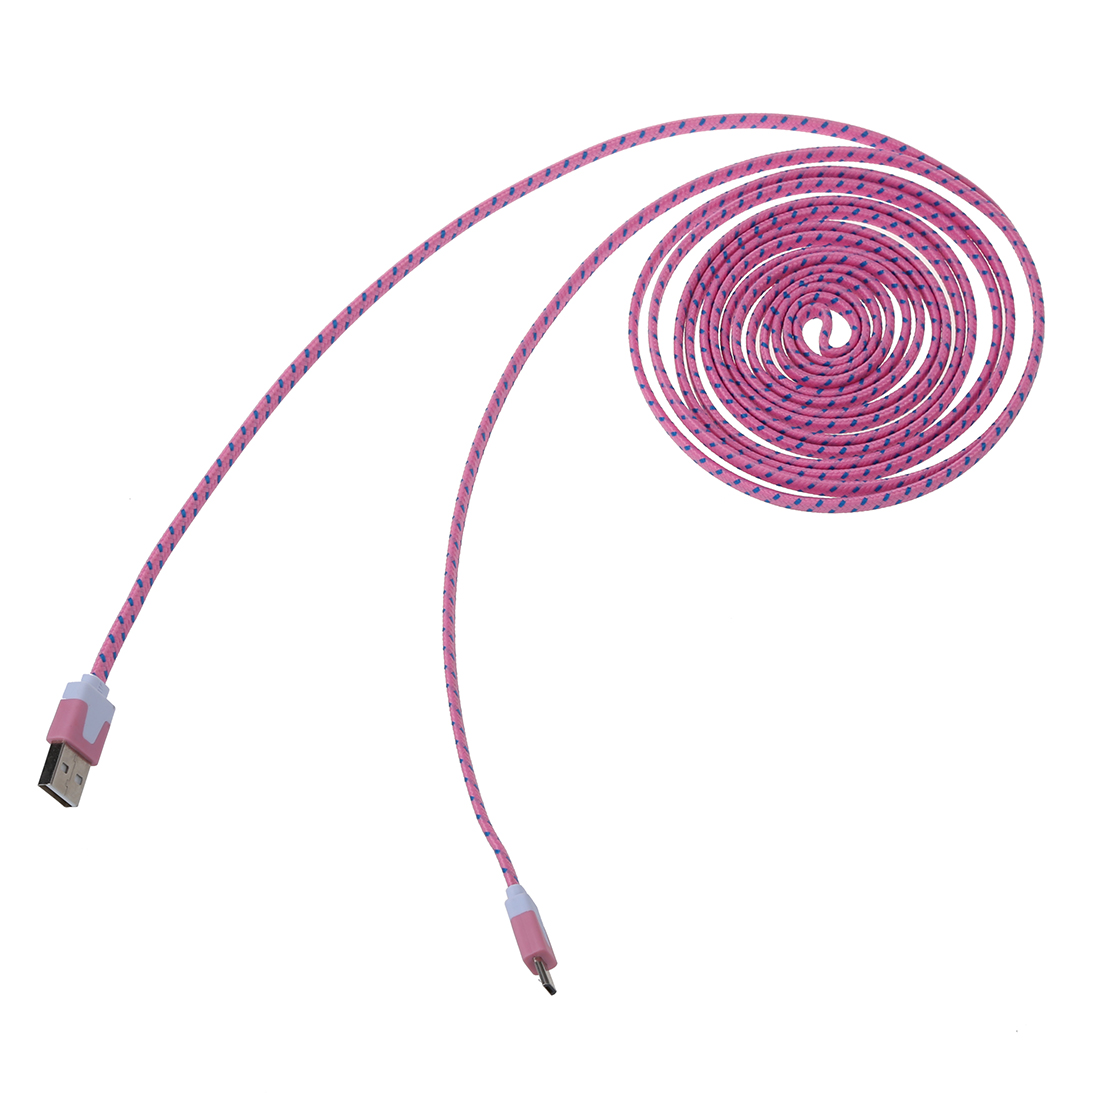 HFES 3M/10Ft Nylon net weave Micro-USB Data cable Pink